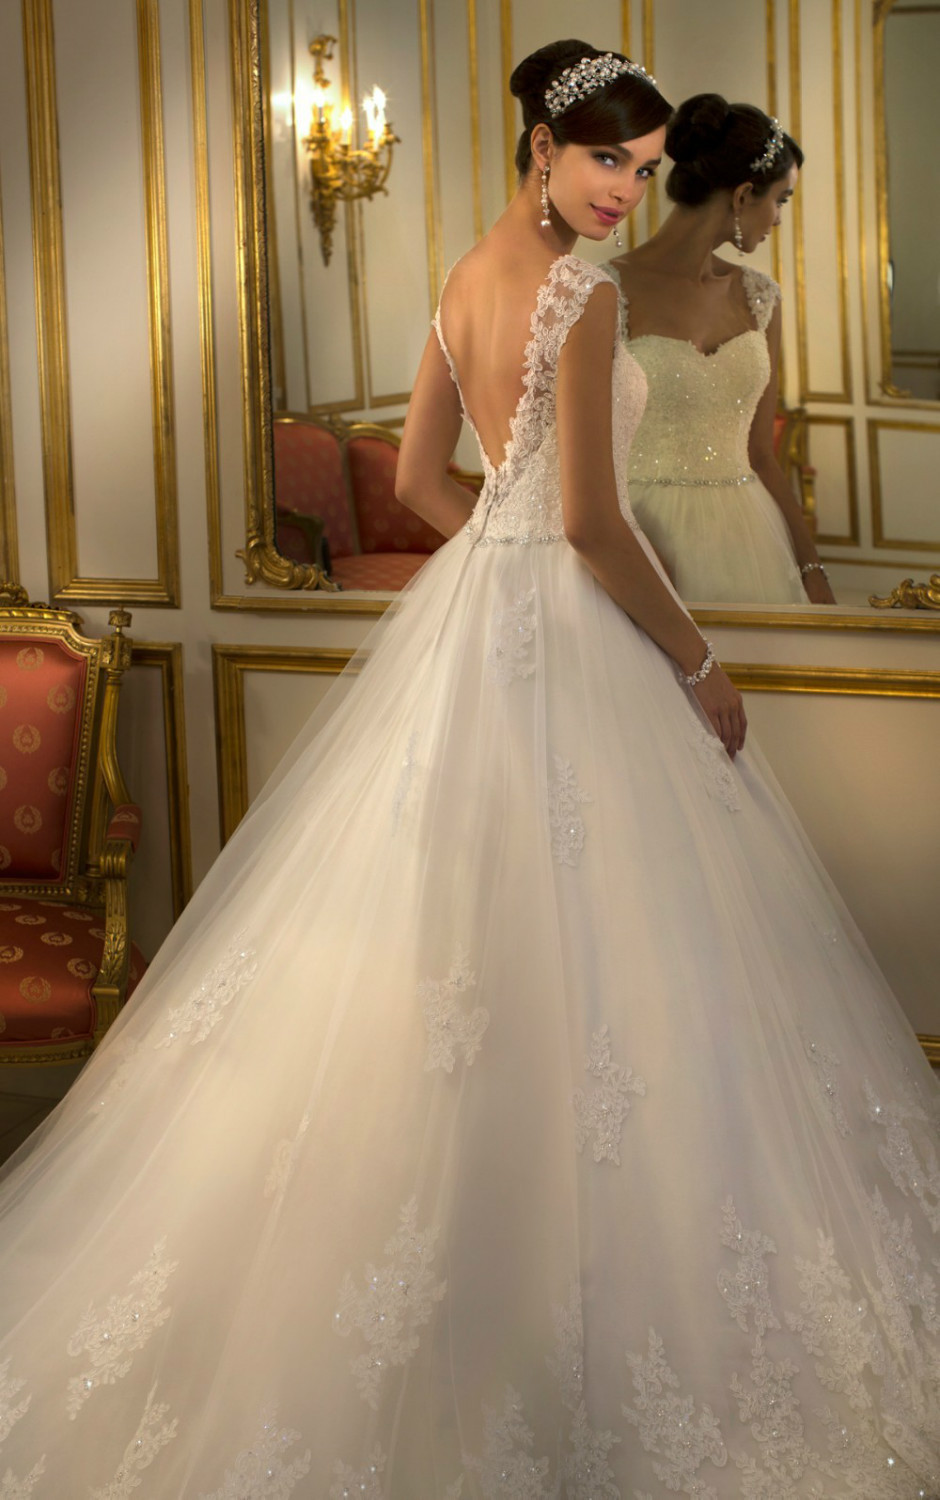 For Brides Looking Wedding Dresses With Lace This Striking